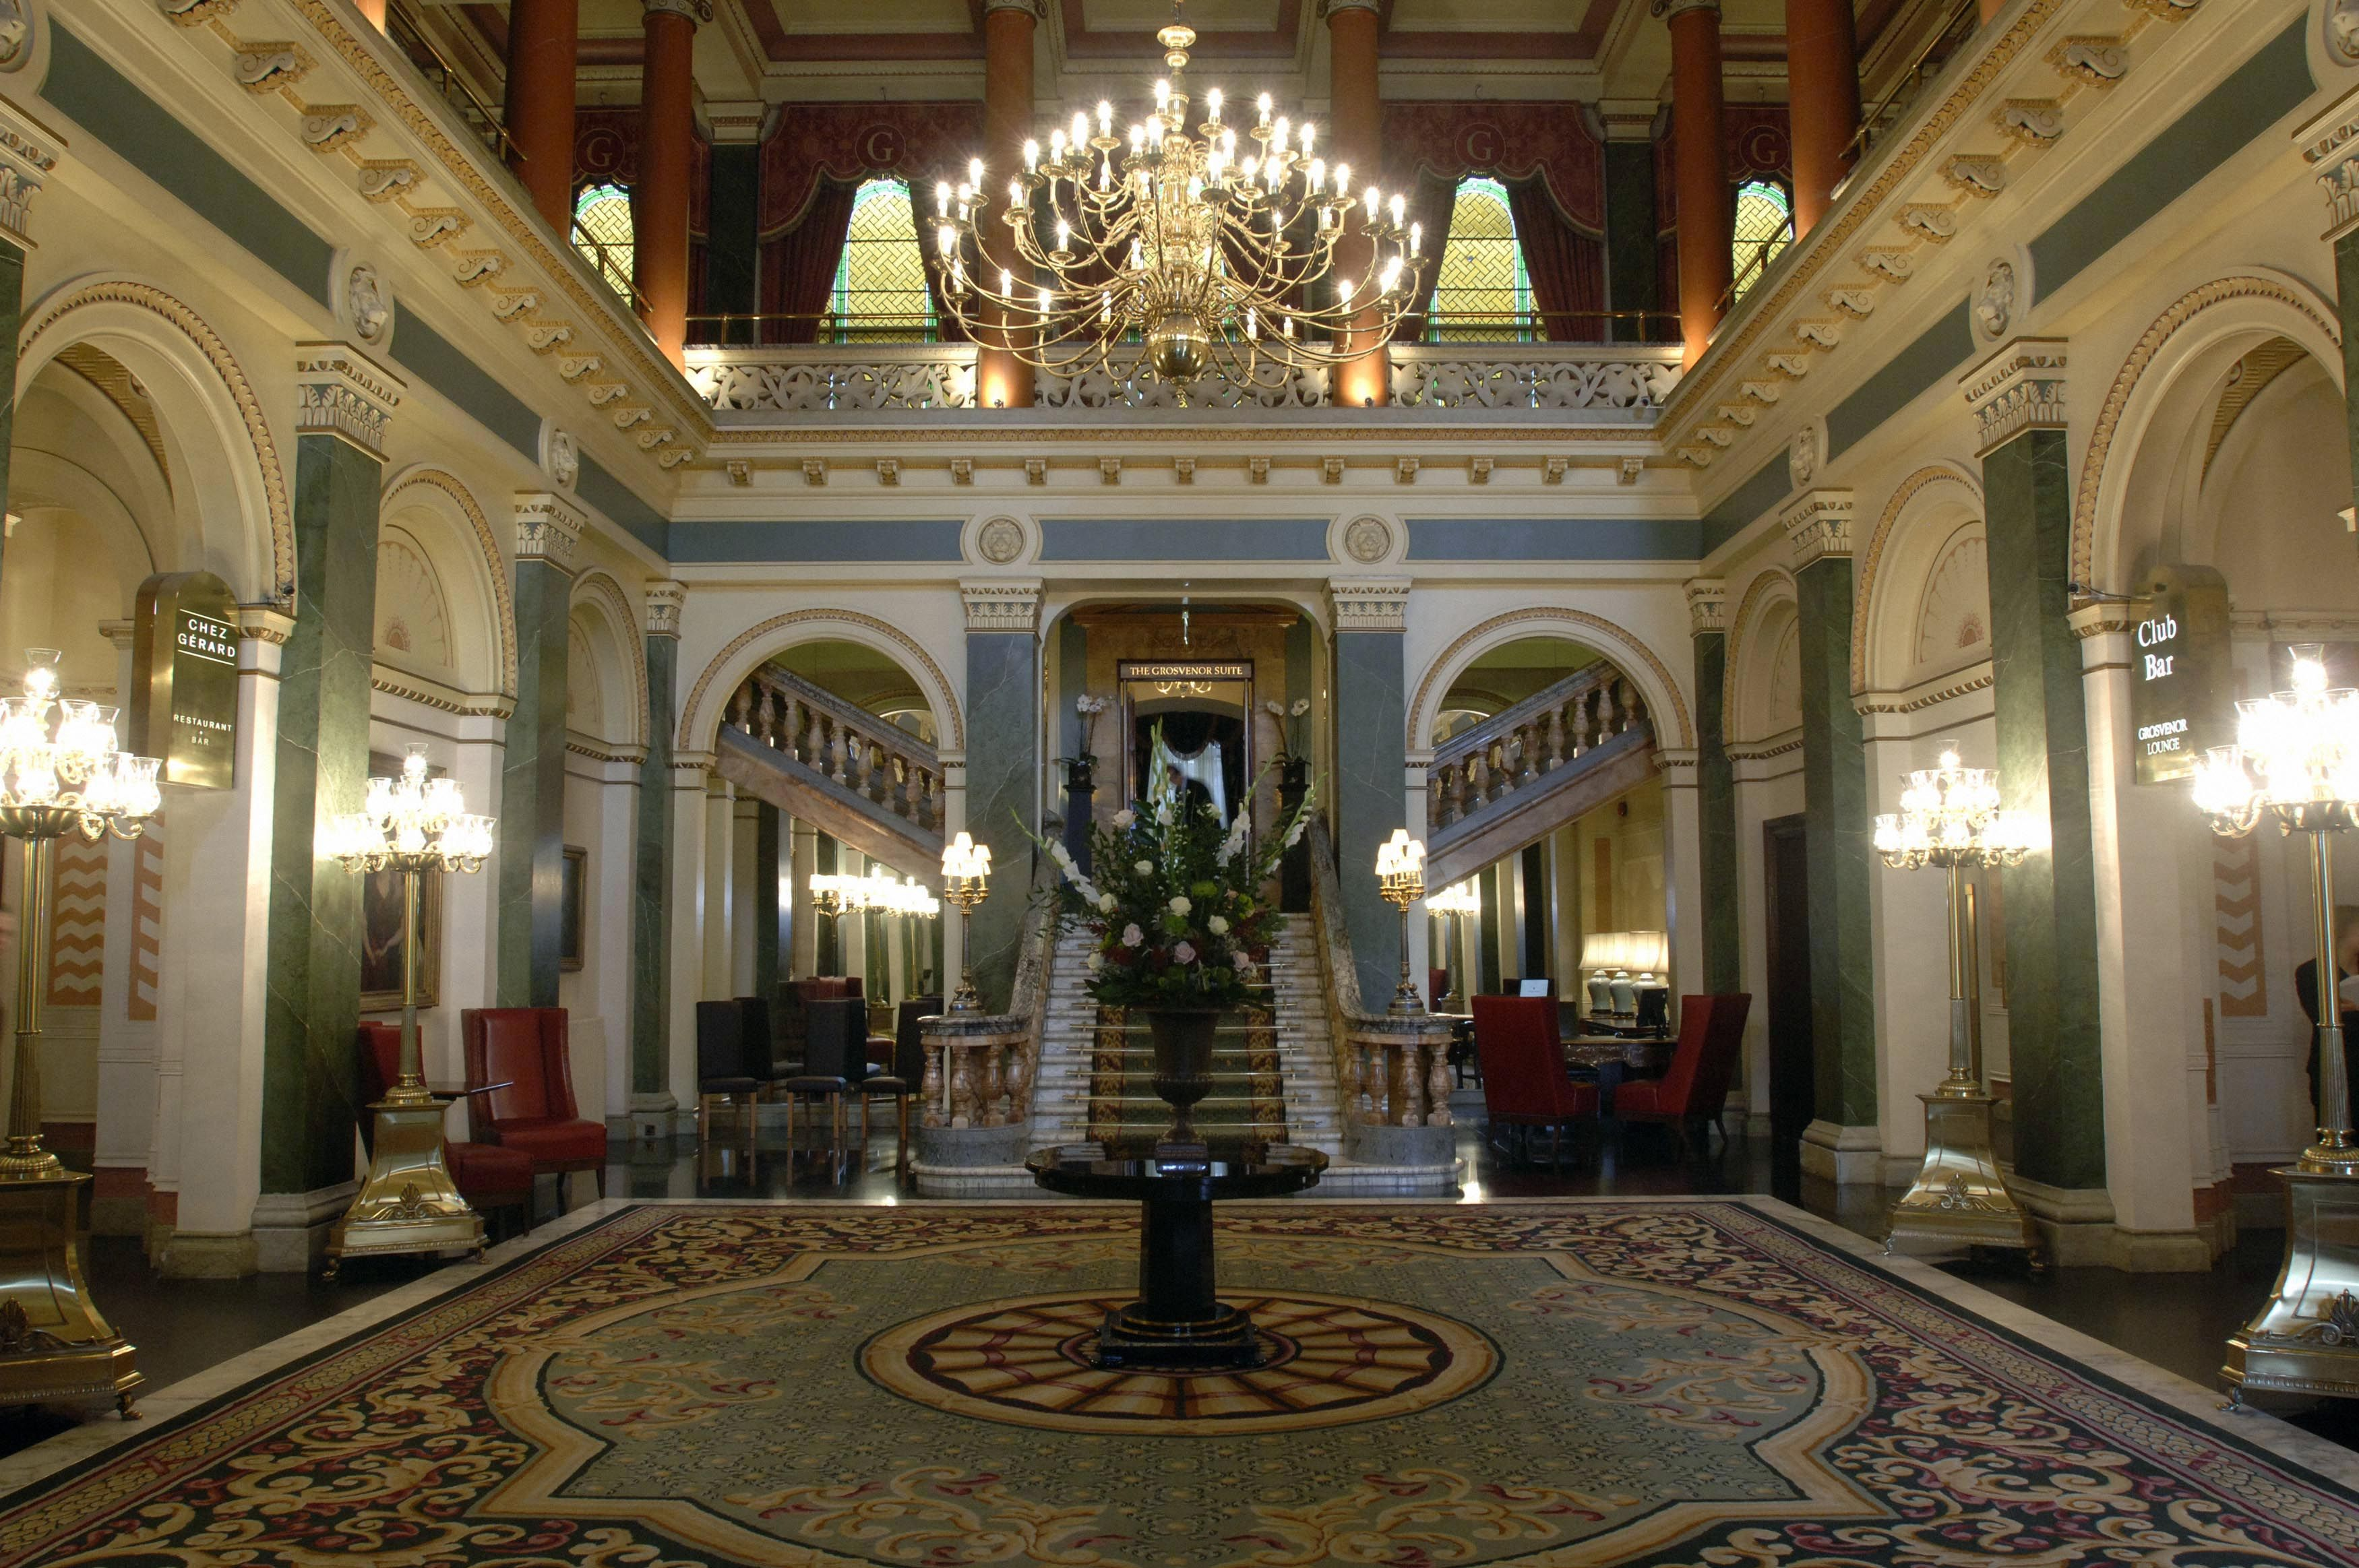 Grosvenor hotel victoria station london victoria lobby this is grosvenor hotel victoria station london victoria lobby this is where my sister trudy and i stayed it is so beautiful we felt like royalty publicscrutiny Gallery